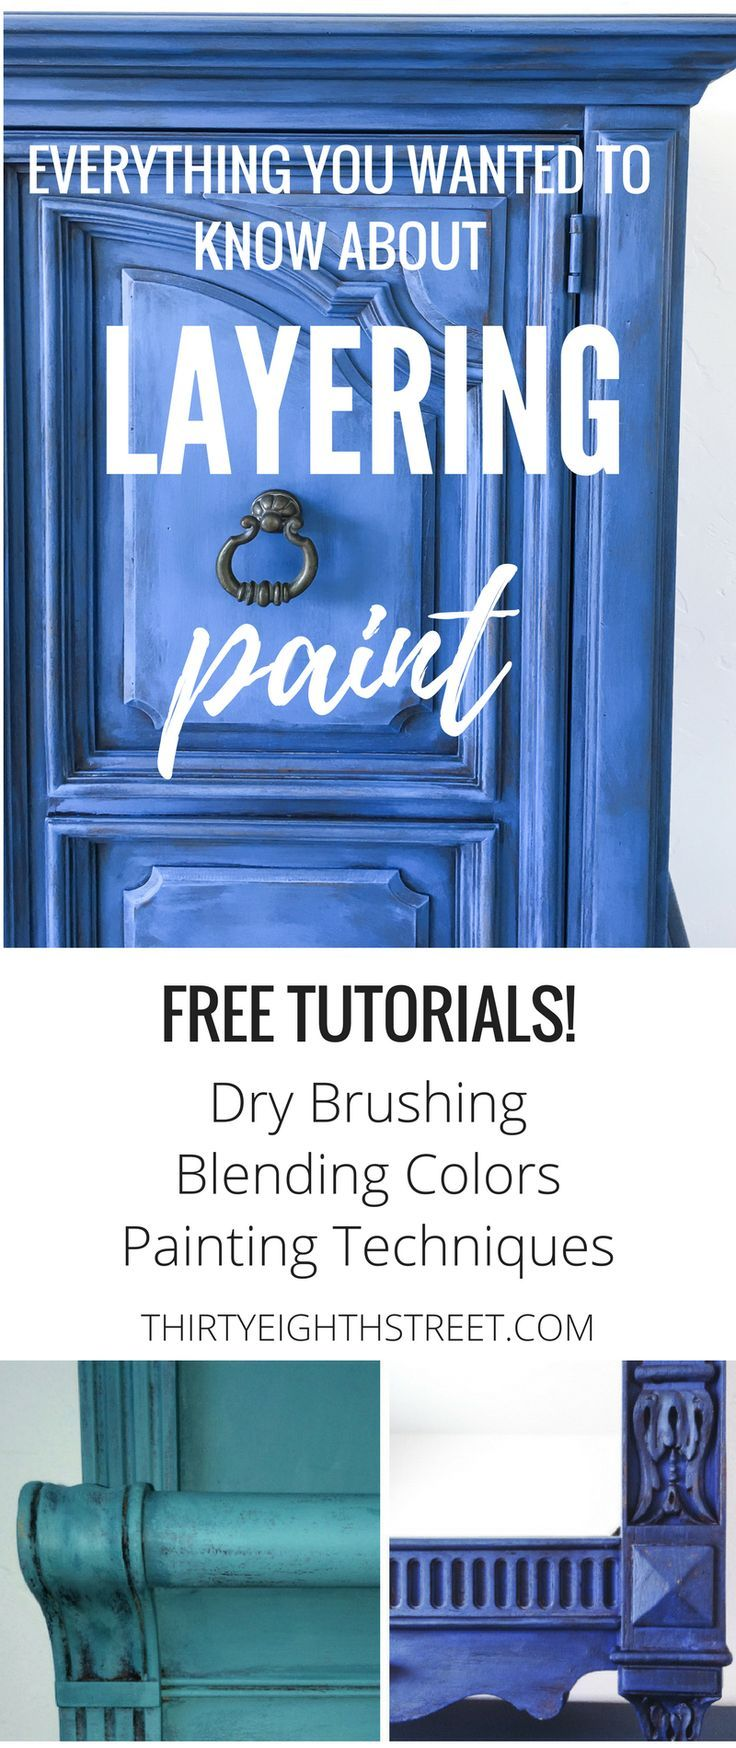 The Ultimate Guide For Layering Paint Colors on Furniture! FREE and easy furnitu...